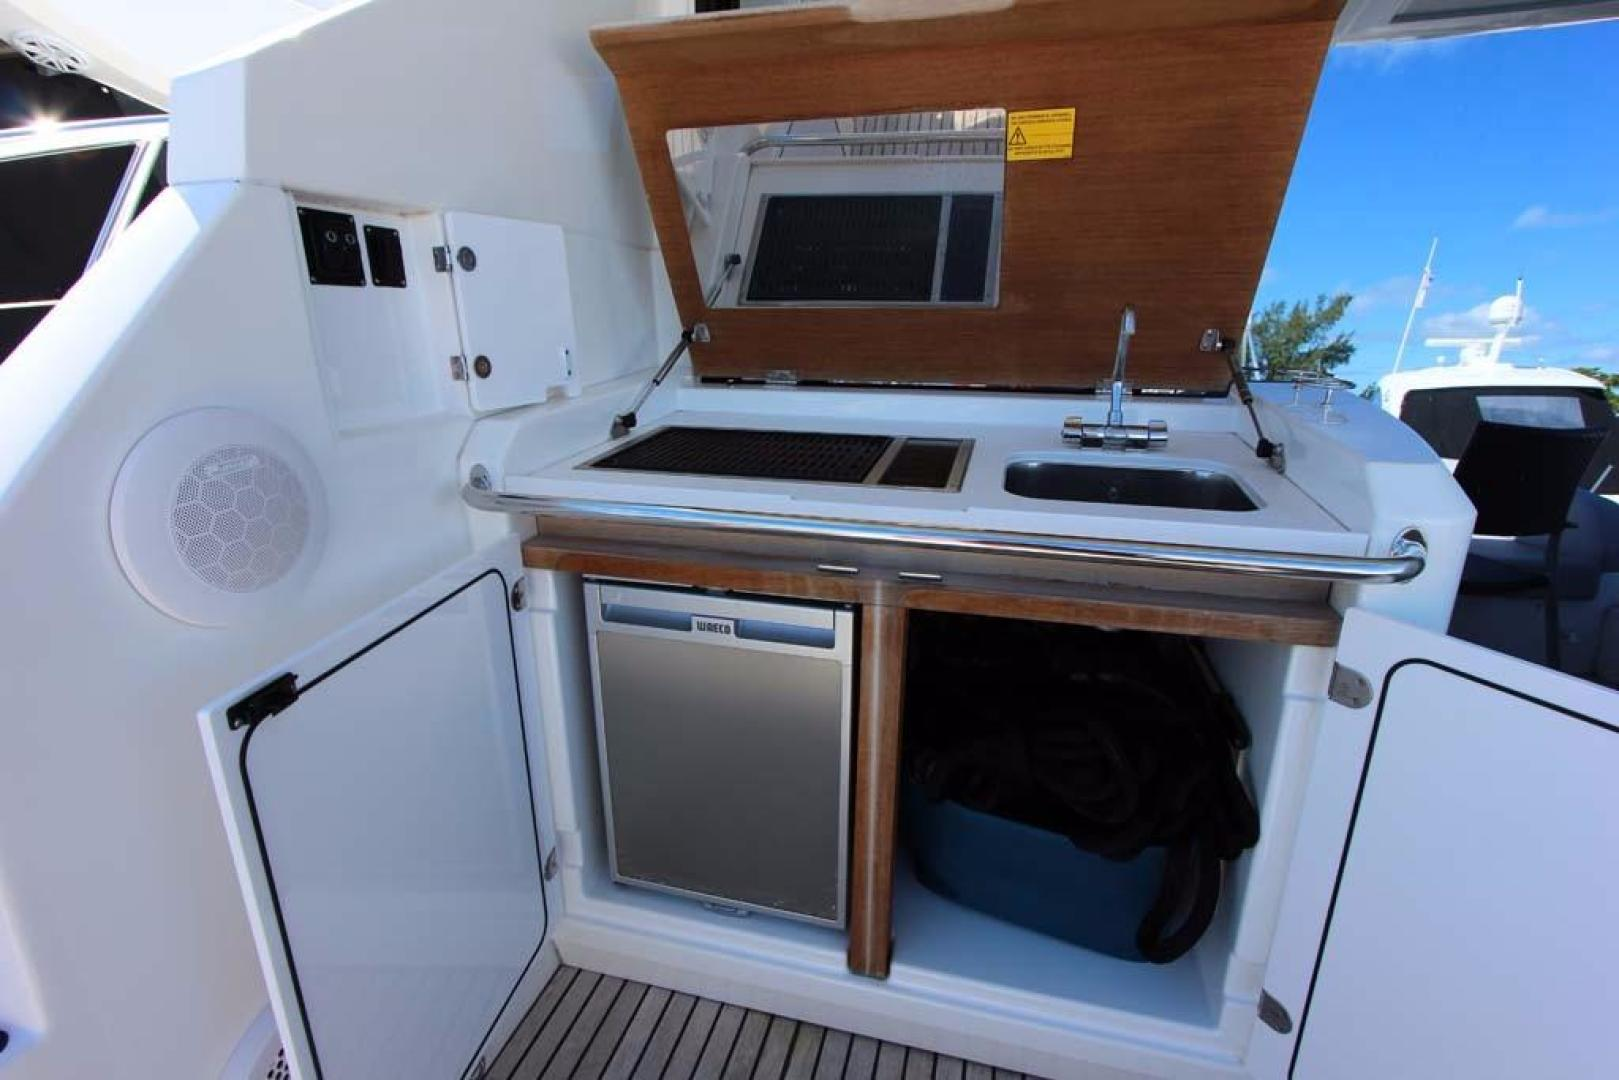 Beneteau-49 GT 2014 -Key Biscayne-Florida-United States-Wet Bar-918804 | Thumbnail